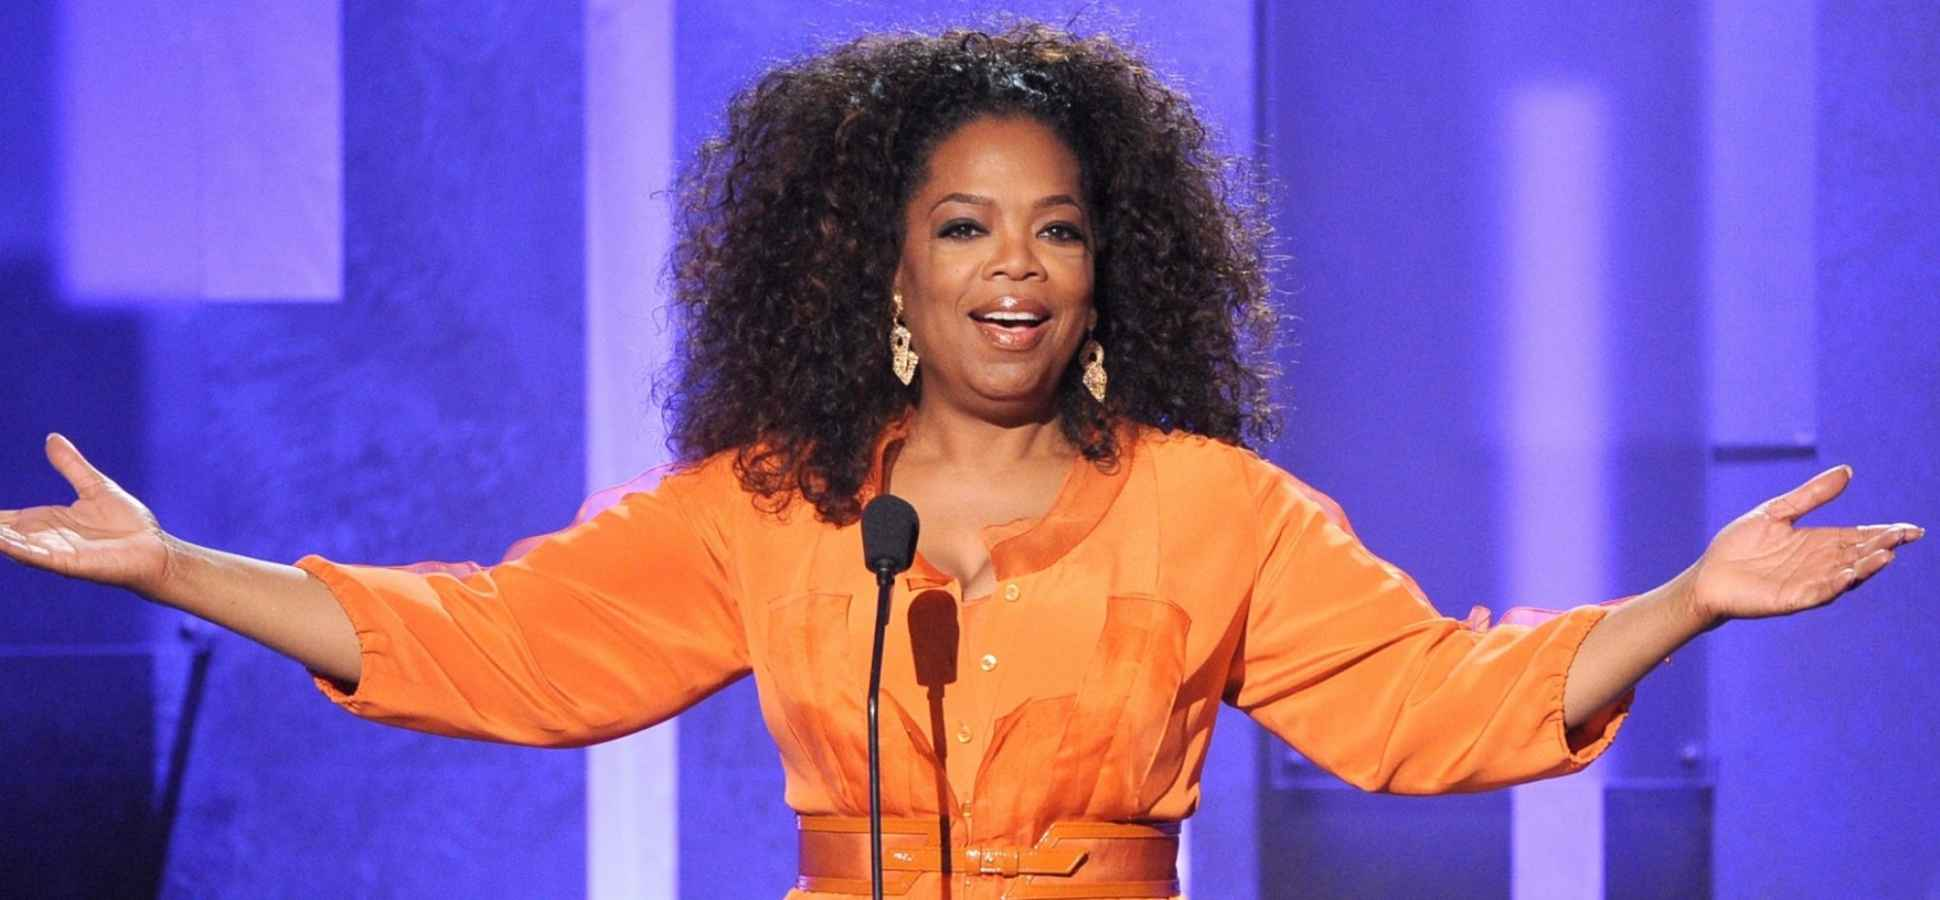 Oprah: The Most Important Thing I've Learned About Branding